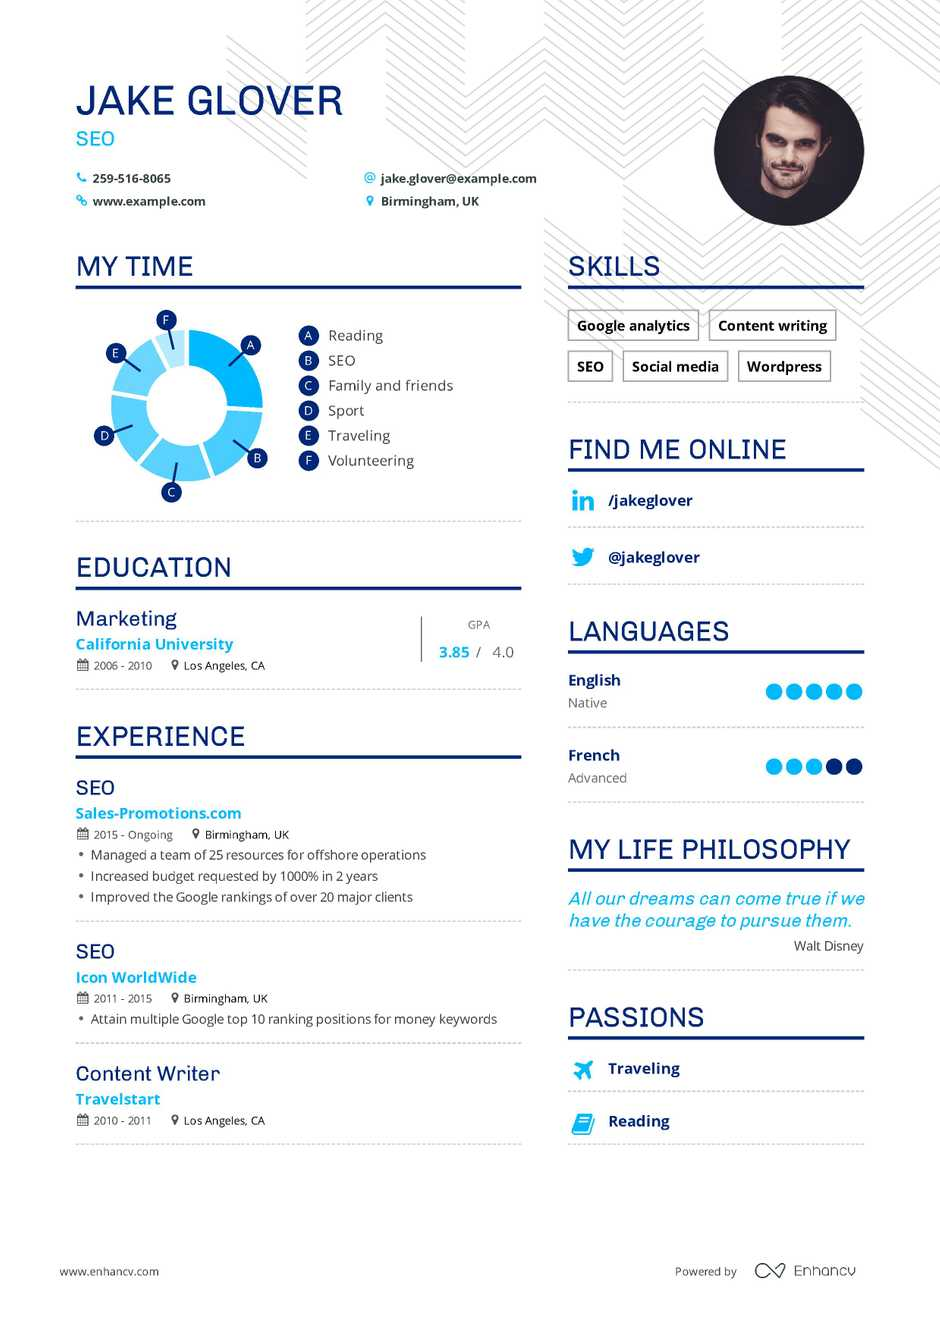 SEO Resume Example and guide for 2019